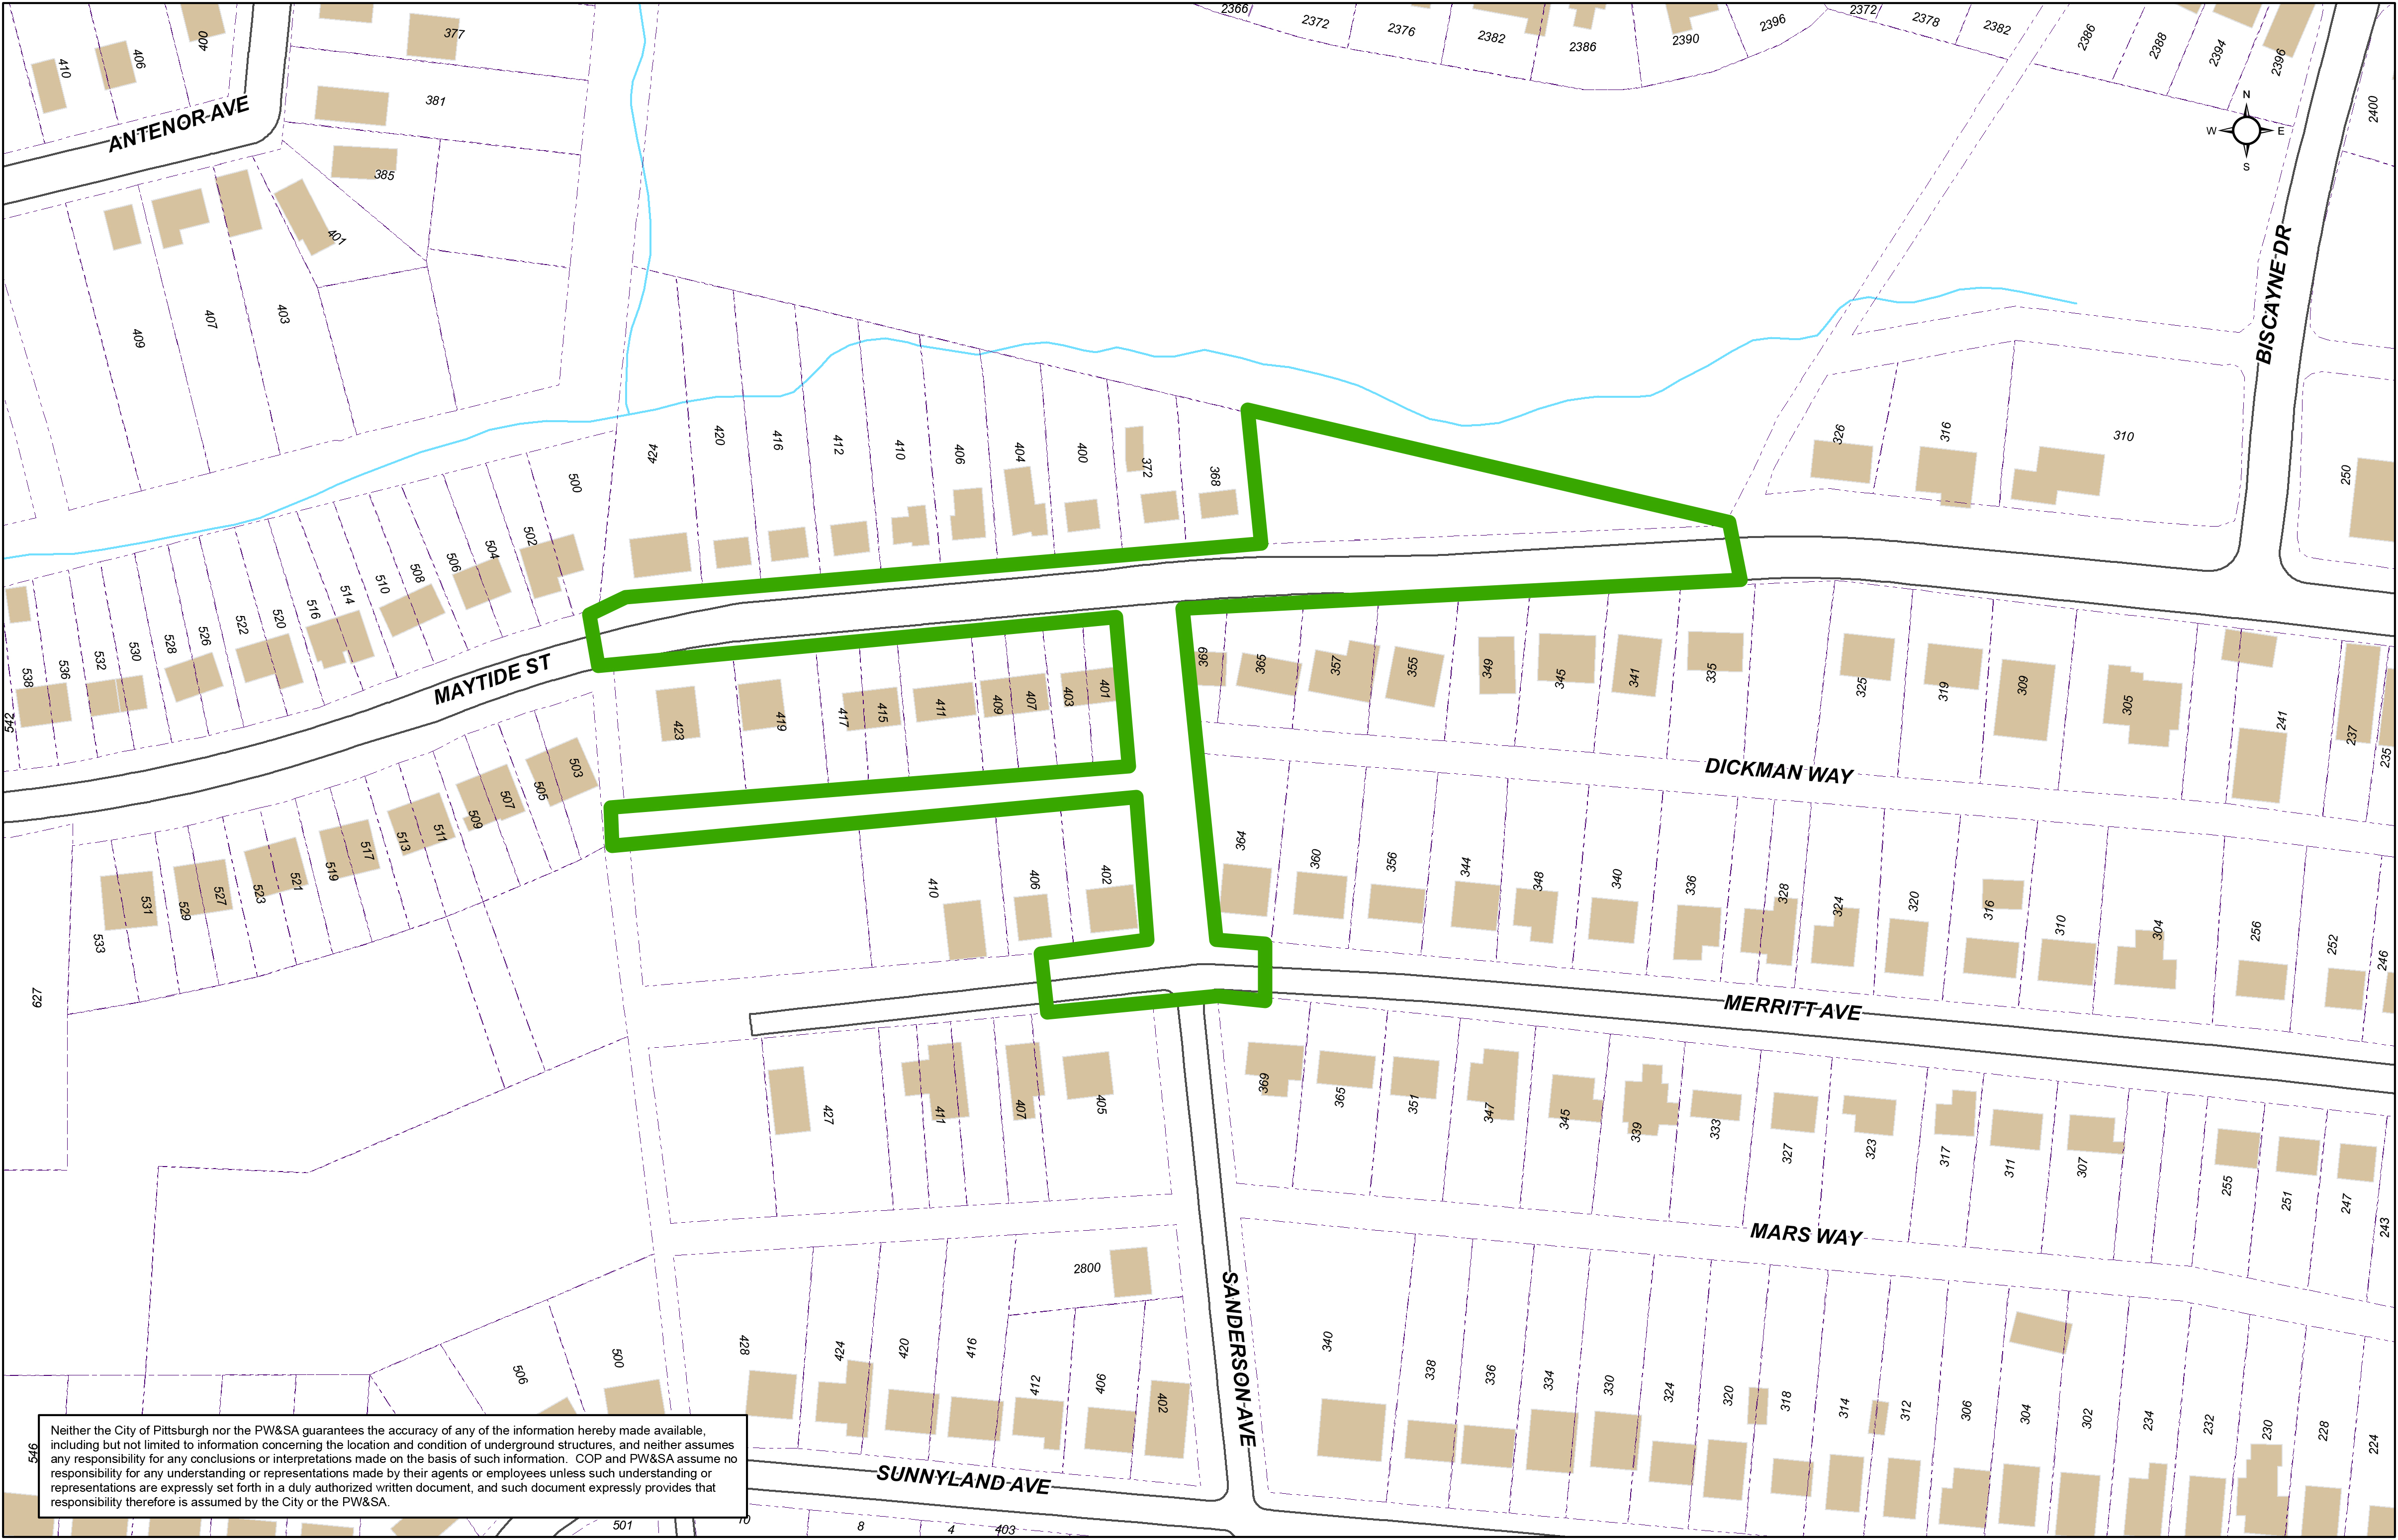 Maytide Street Stormwater Improvement Project Area Map